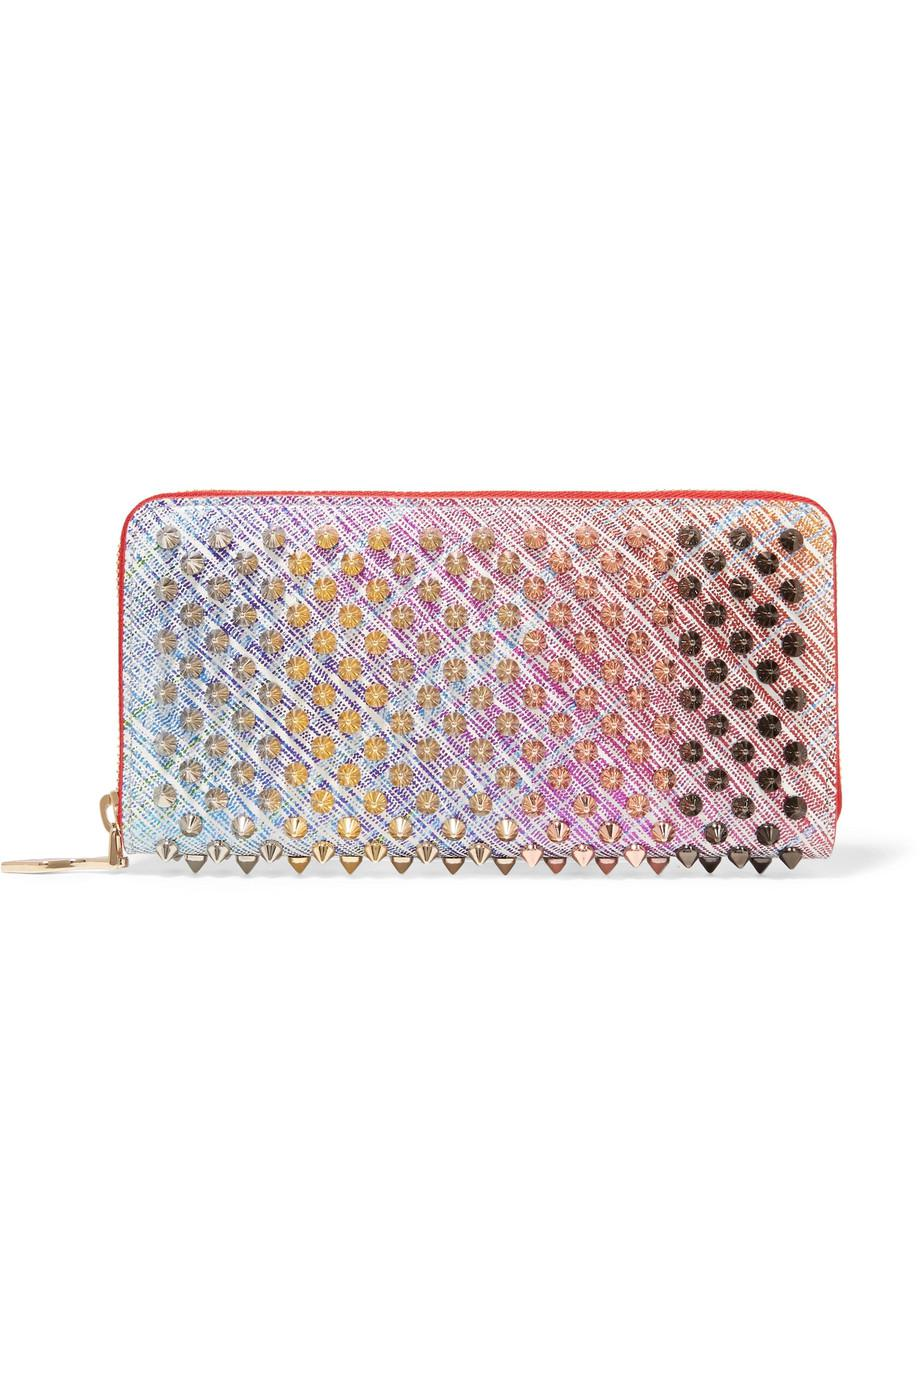 Panettone Spiked Metallic Suede Continental Wallet - Pink Christian Louboutin 0ZlpWSNYw8